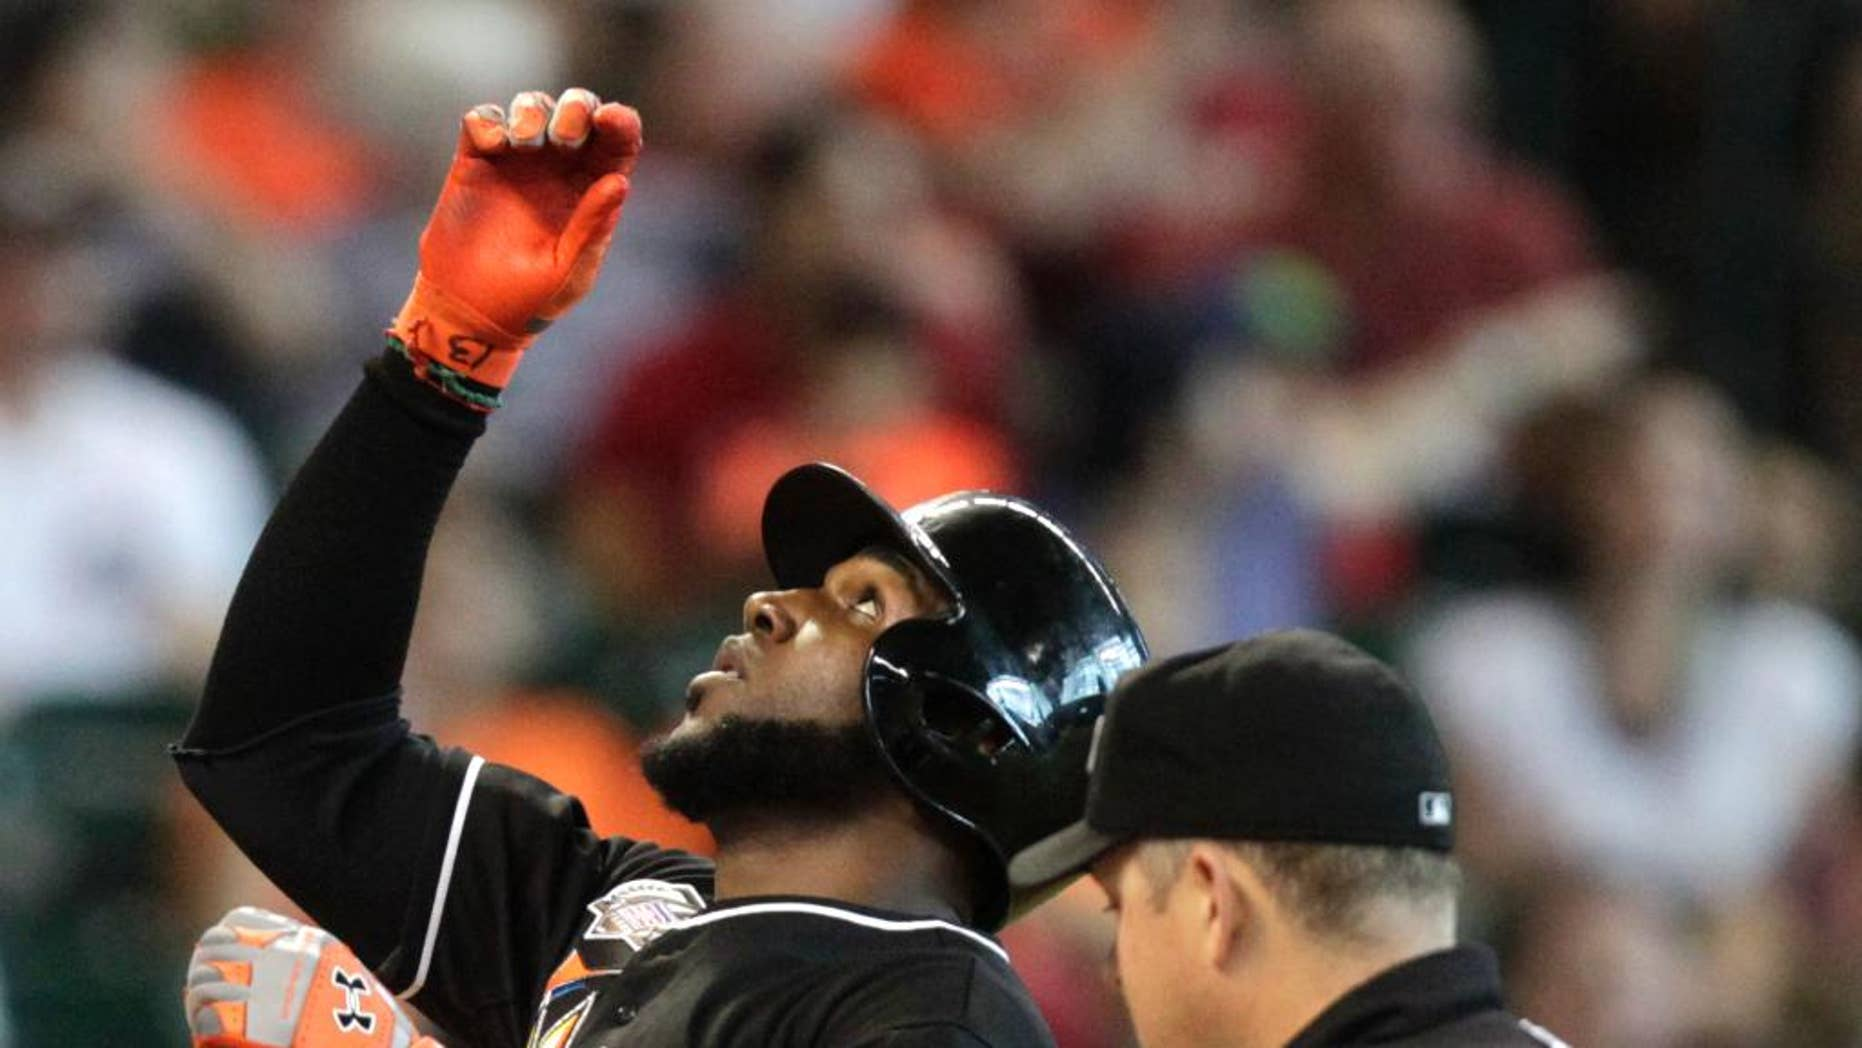 Miami Marlins Marcell Ozuna points to the sky while crossing home plate after hitting a home run during the sixth inning of a baseball game against the Houston Astros, Sunday, July 27, 2014, in Houston. (AP Photo/Patric Schneider)